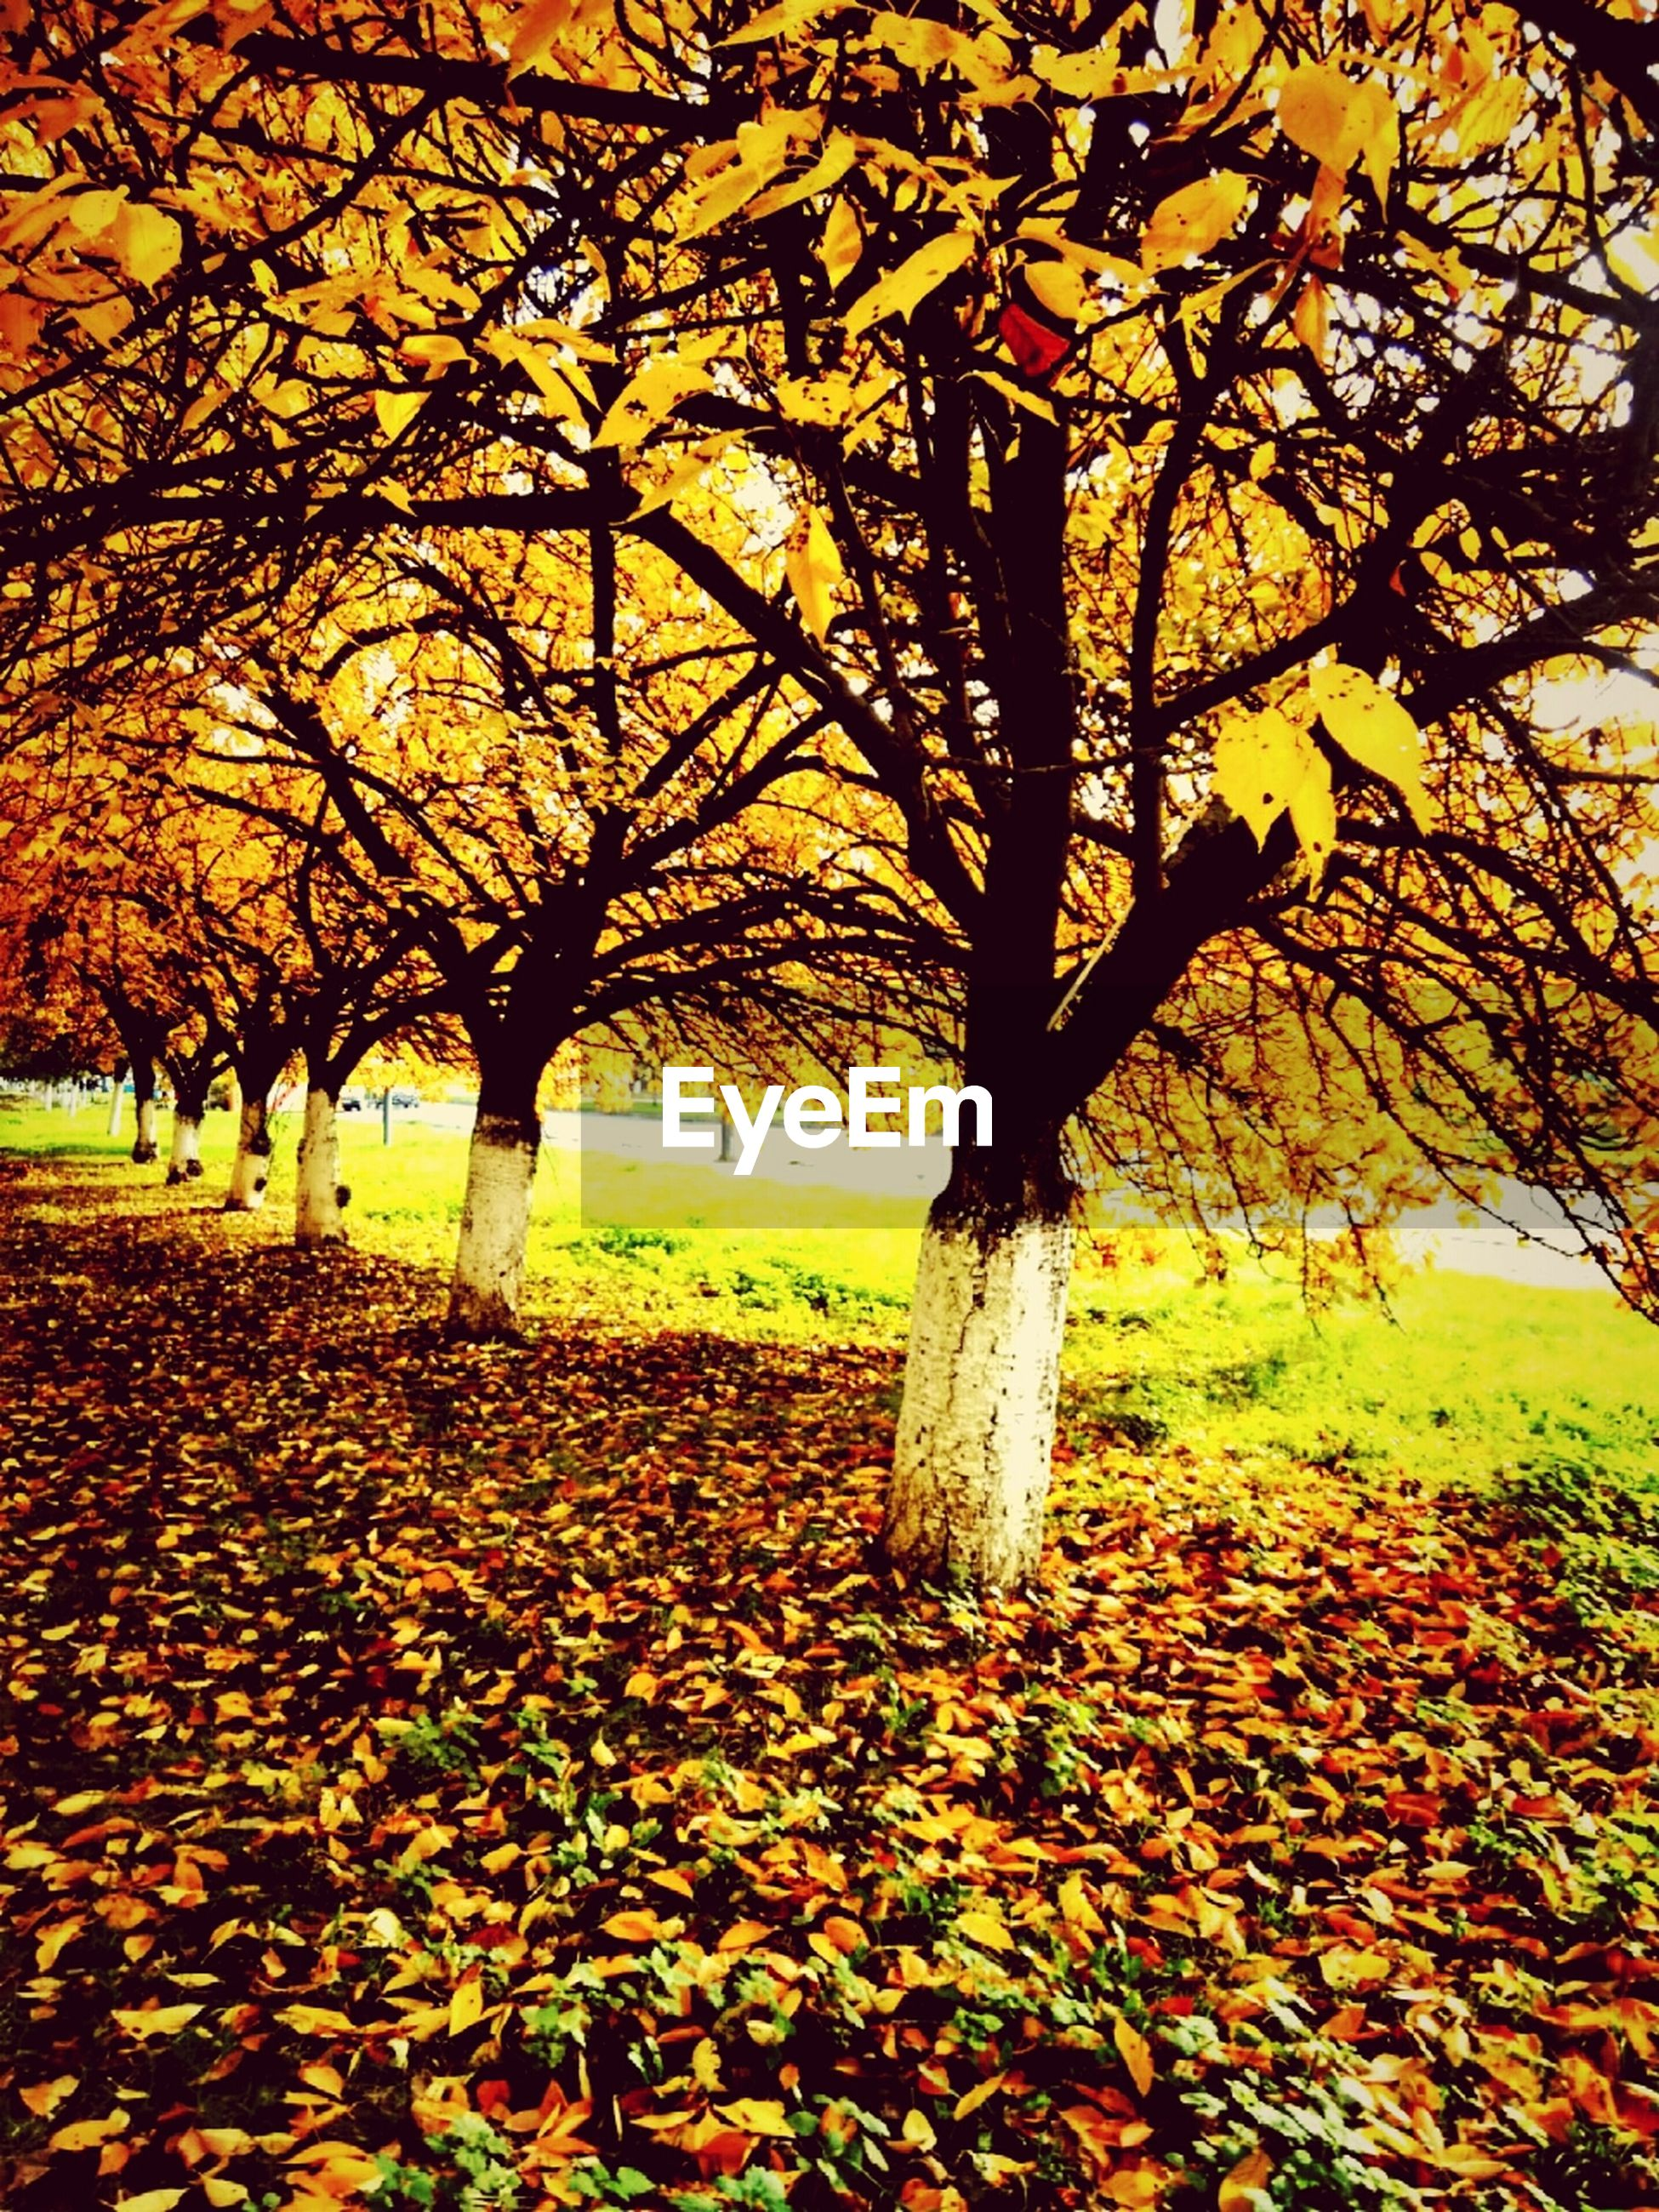 tree, autumn, change, season, tranquility, nature, park - man made space, leaf, beauty in nature, tranquil scene, branch, tree trunk, orange color, scenics, fallen, field, growth, grass, bare tree, landscape